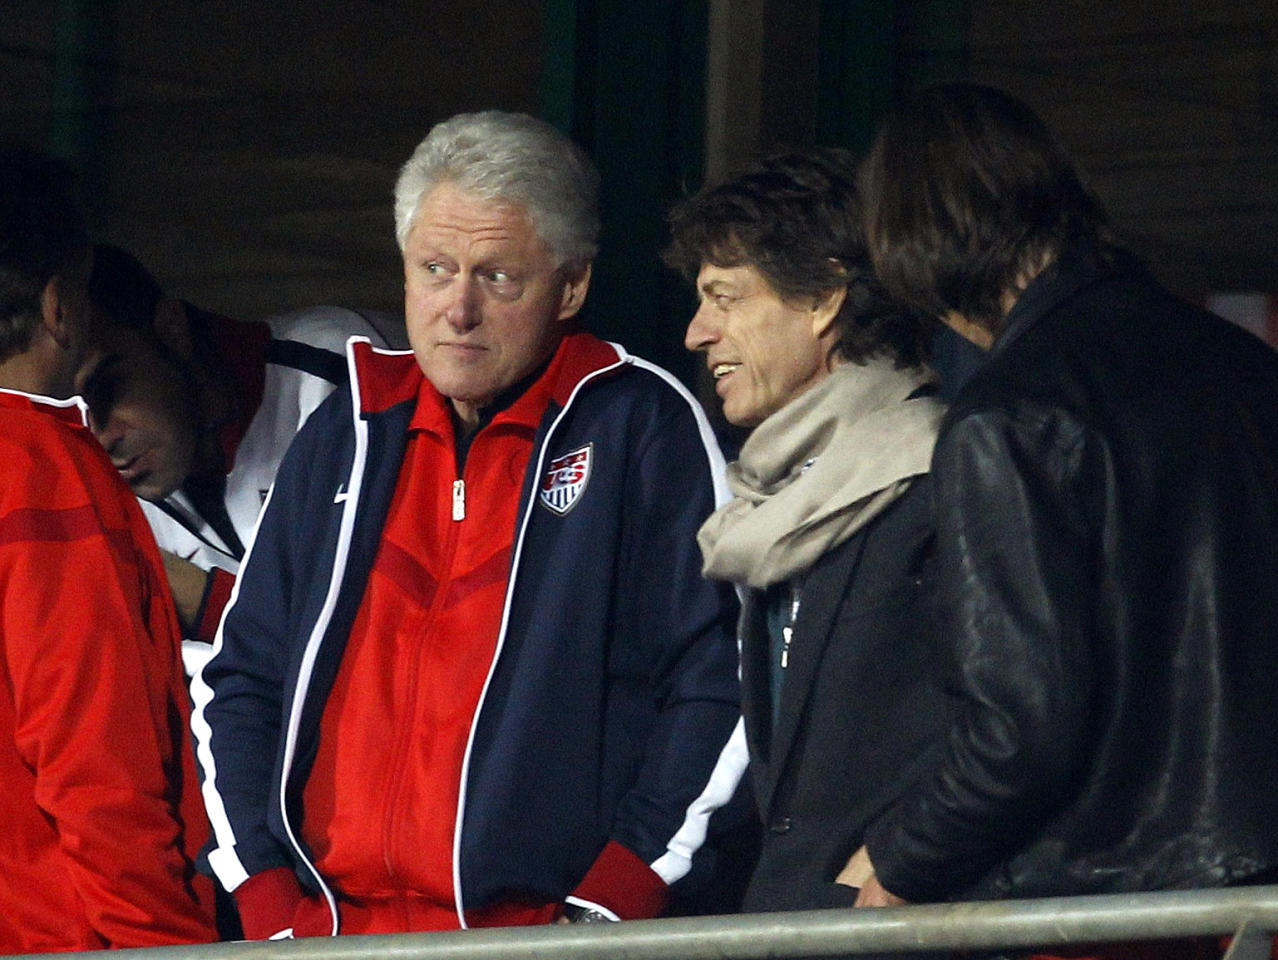 Musician Mick Jagger (2nd R) and former U.S. President Bill Clinton watch the 2010 World Cup second round match between the United States and Ghana at Royal Bafokeng stadium in Rustenburg June 26, 2010. (REUTERS/Brian Snyder)